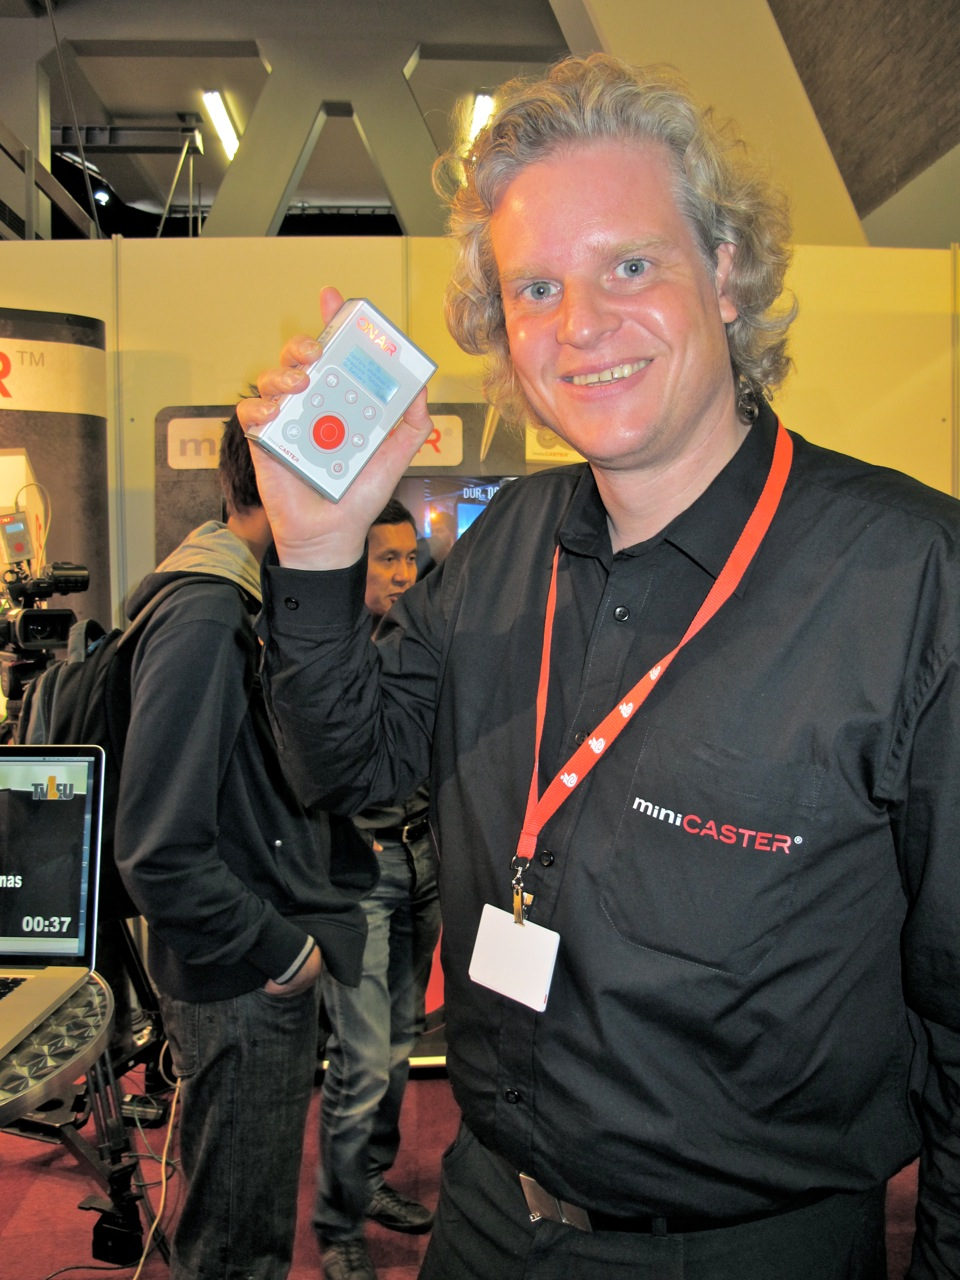 TV1.EU's Michael Westphal showing off the brand-new miniCASTER